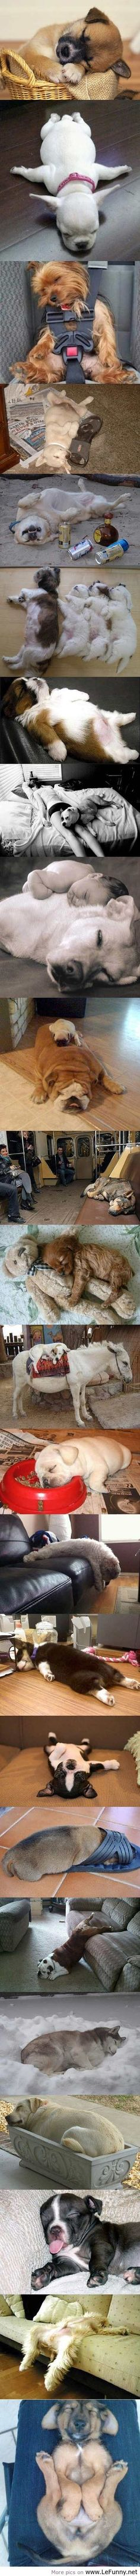 nap time | dogs | puppies